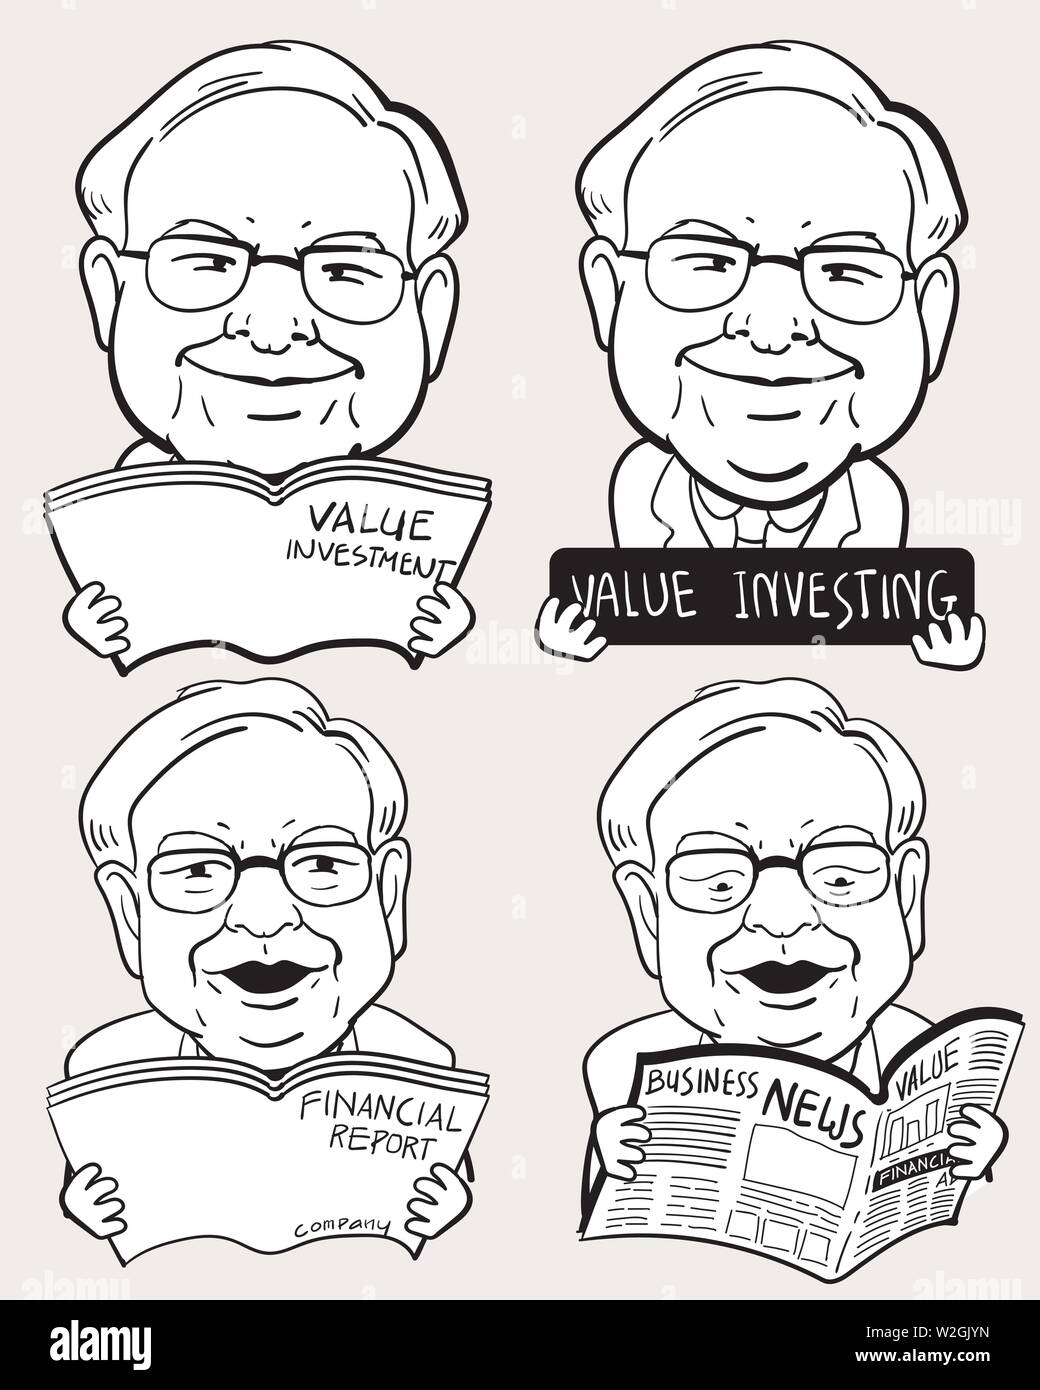 Character drawing set of Warren Buffett, The Investor in USA. - Stock Image